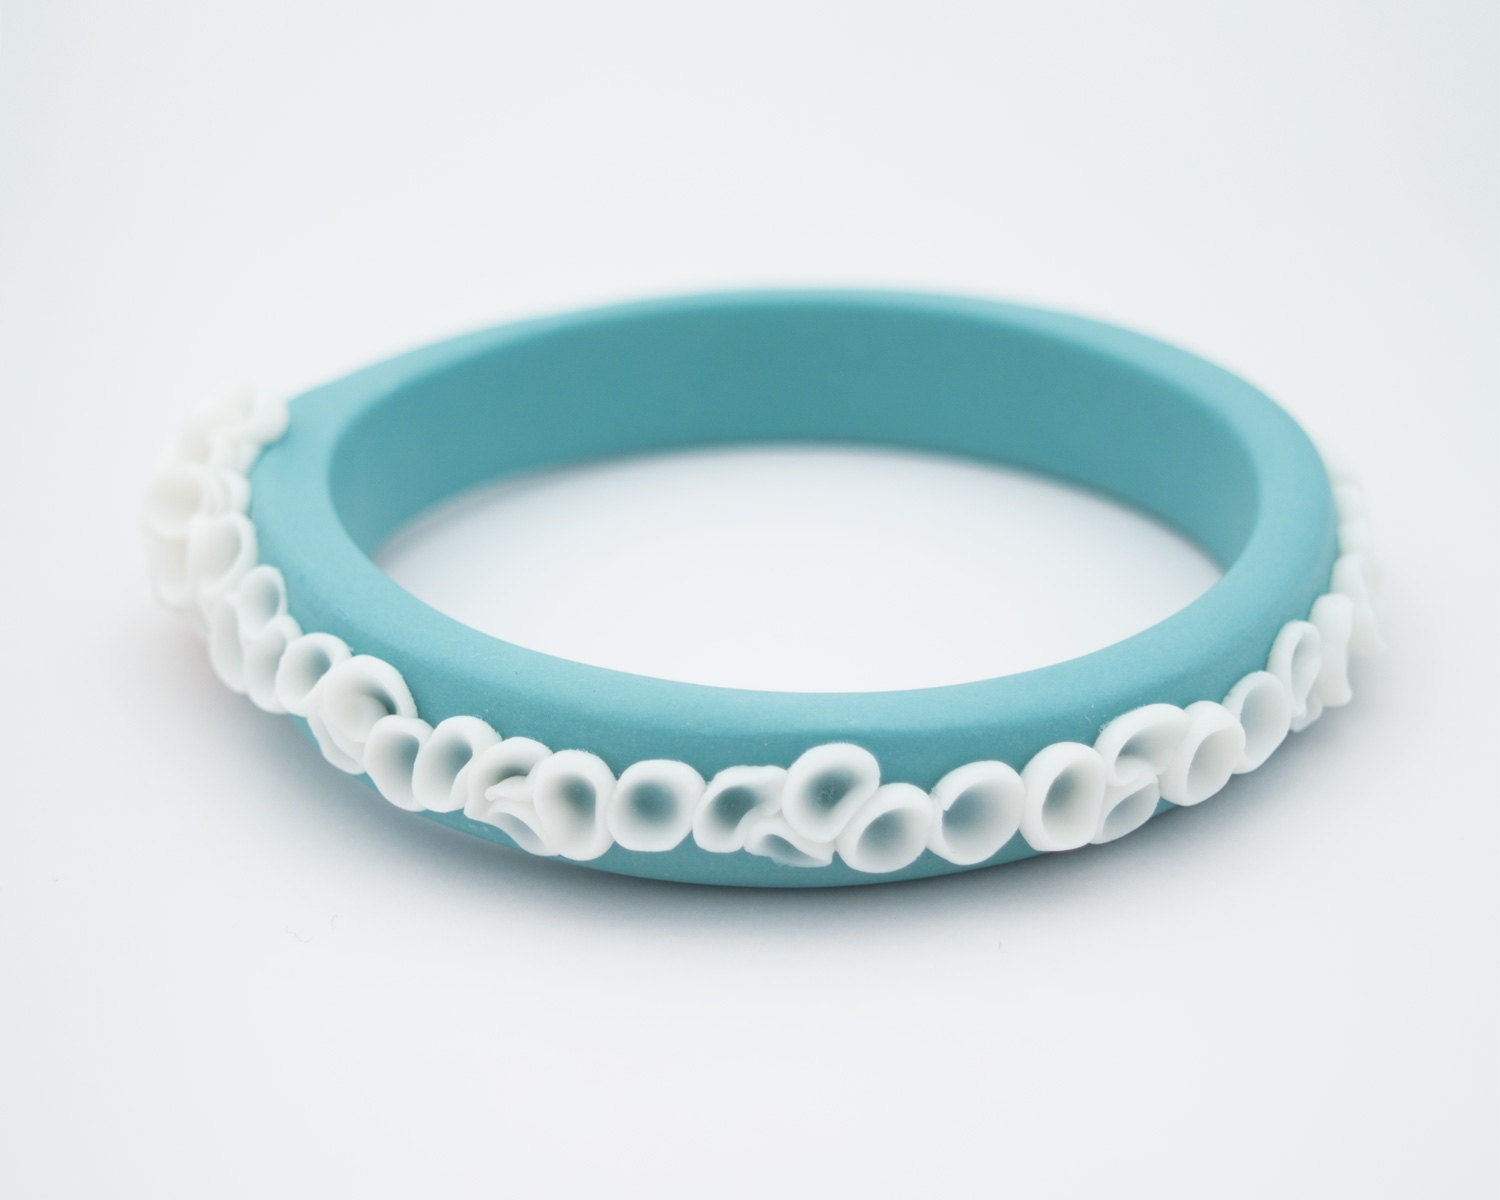 Turquoise Braclet La Rambla